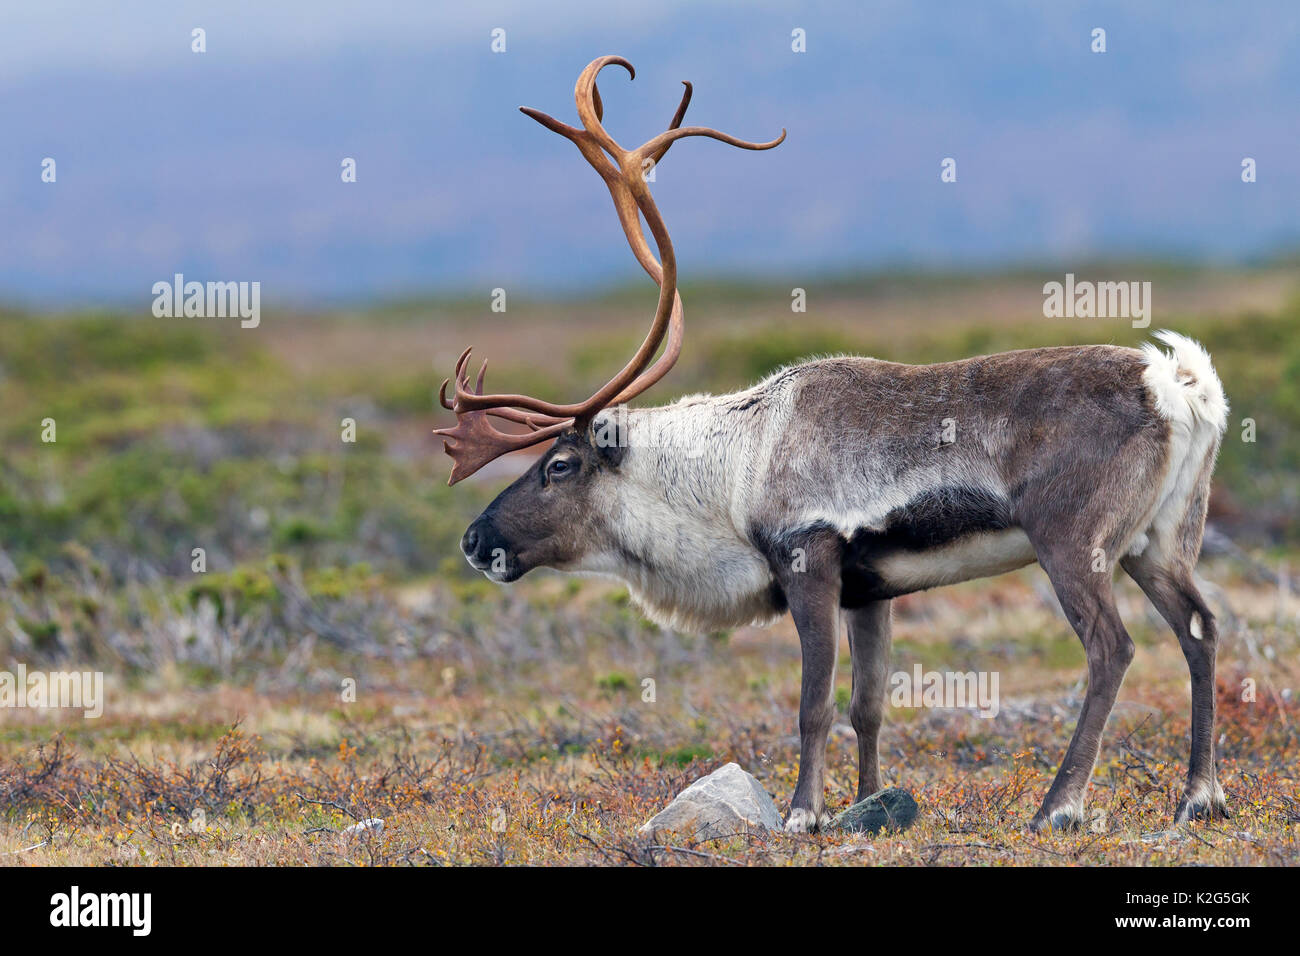 Reindeer (Rangifer tarandus), male in the tundra,the knees produce a clicking sound as they walk - Stock Image